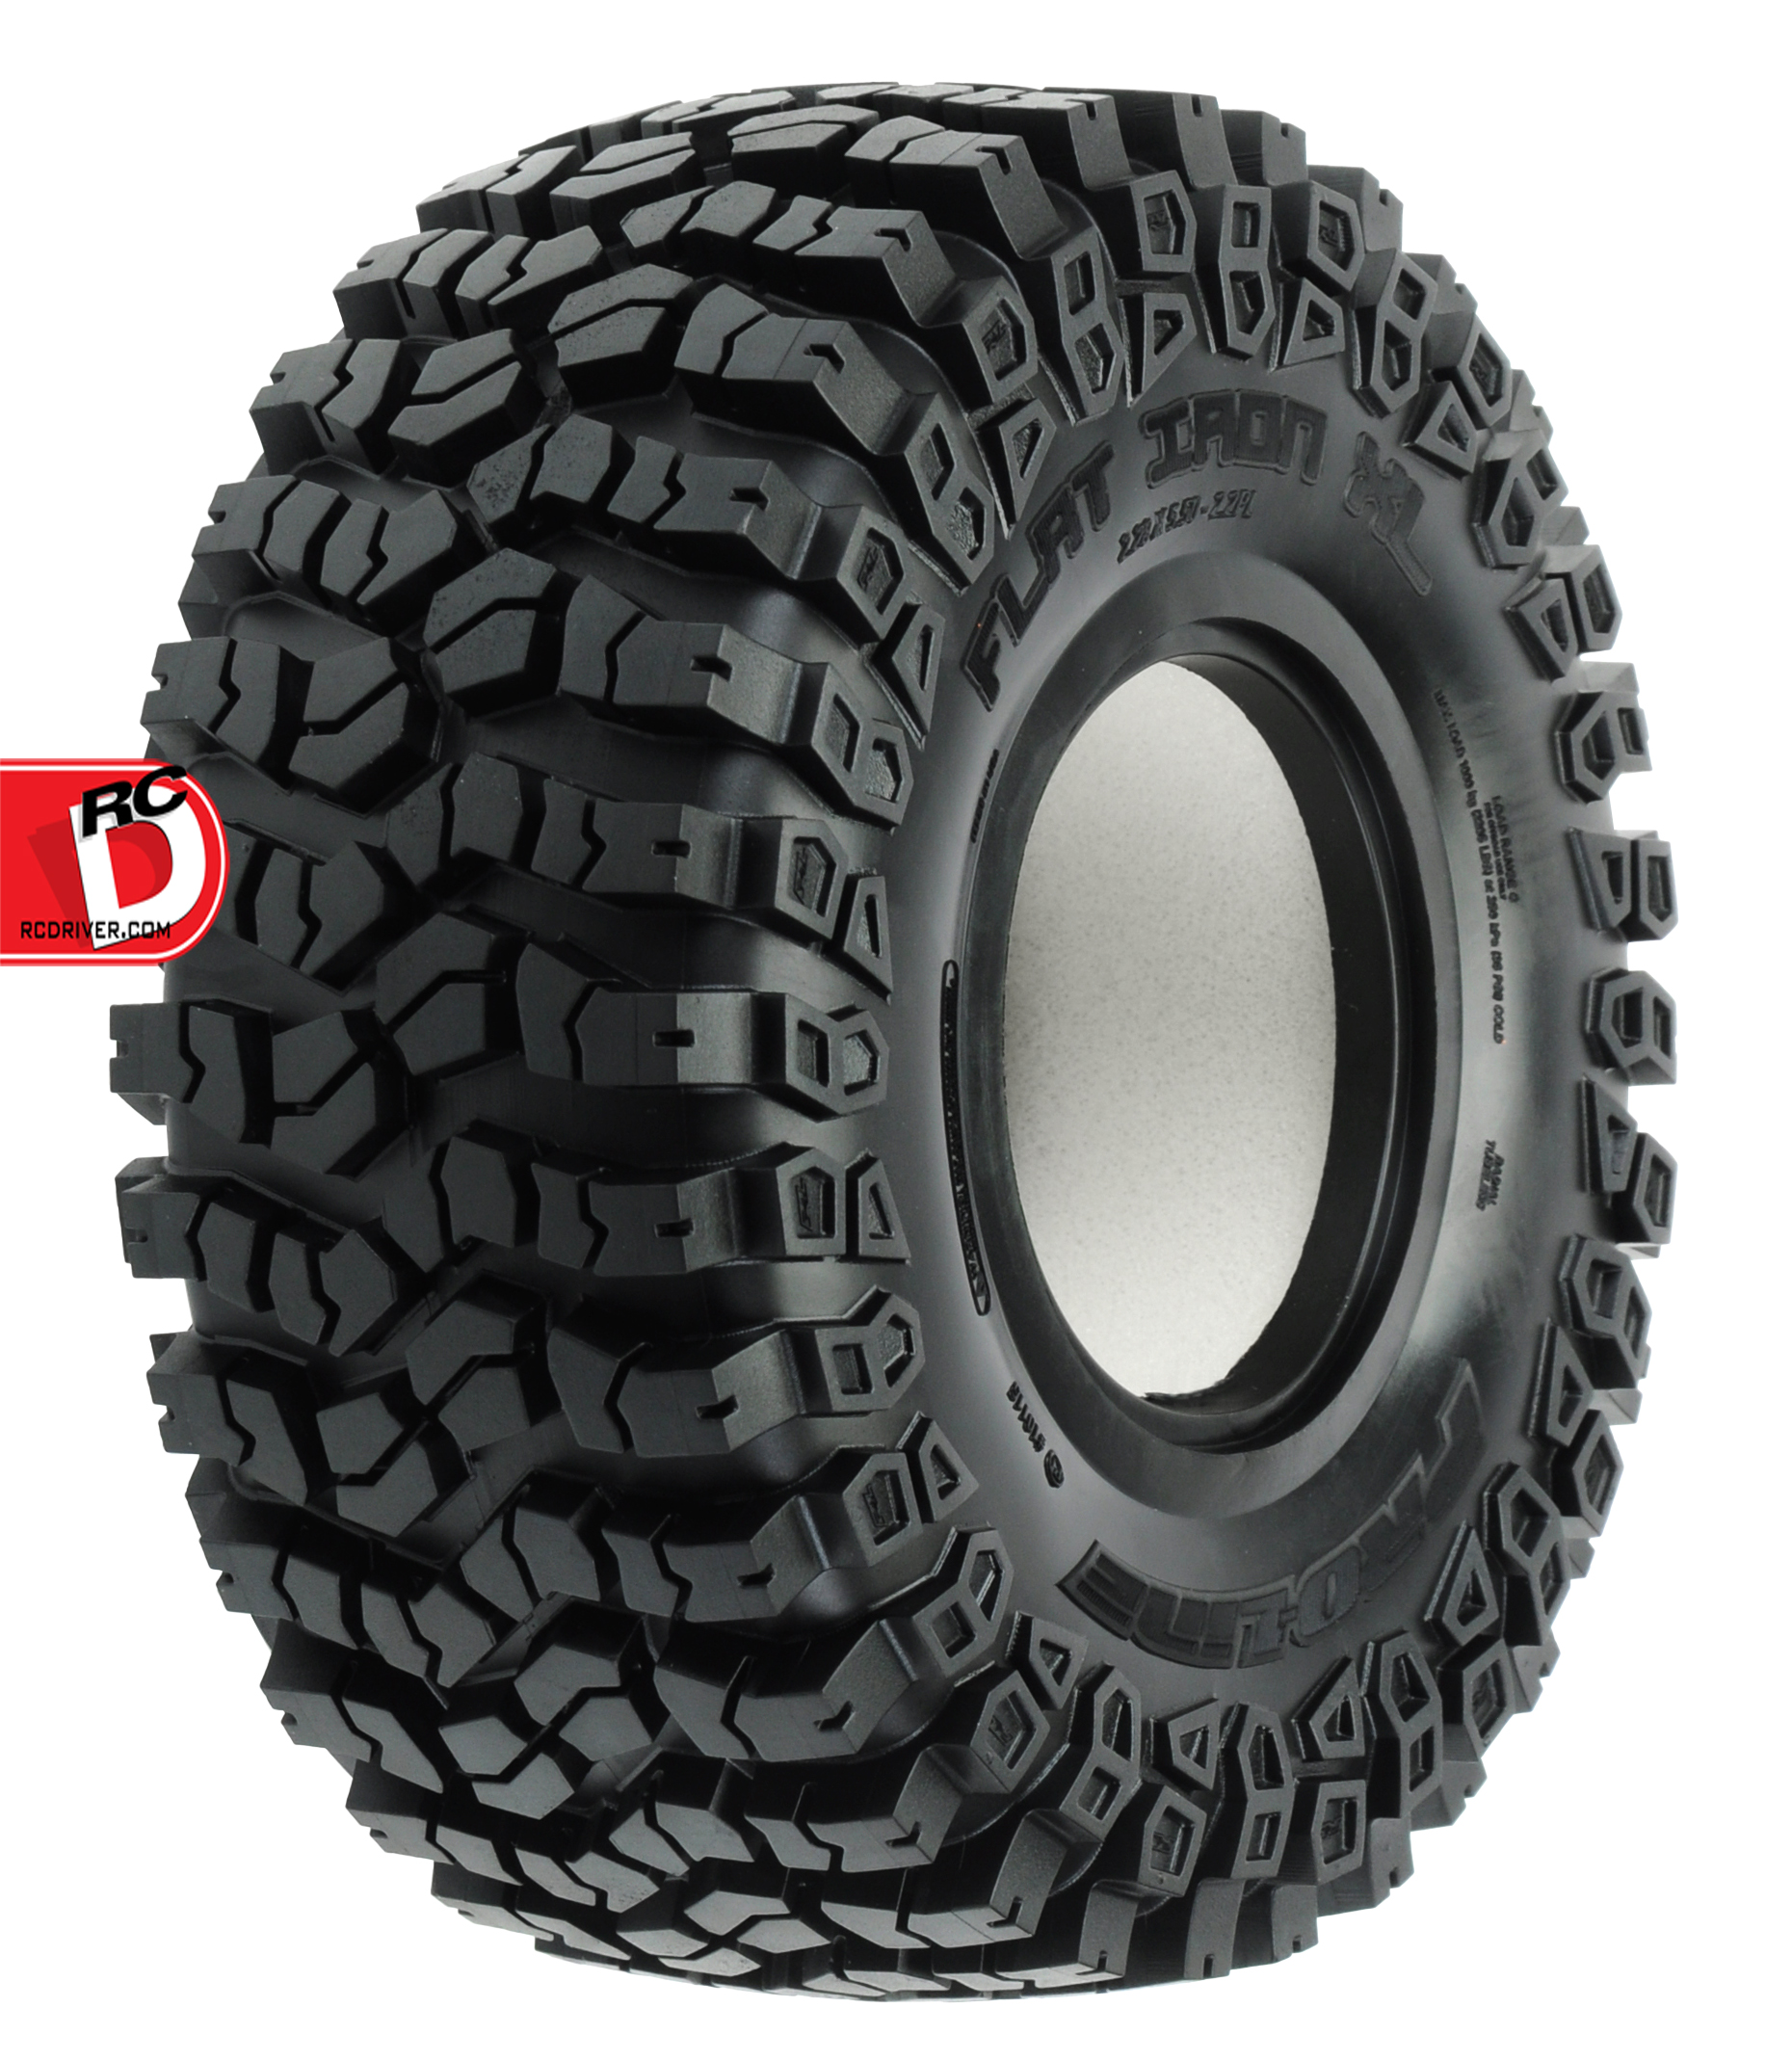 Pro-Line - Flat Iron XL 2.2 G8 Rock Terrain Truck Tires with Memory Foam